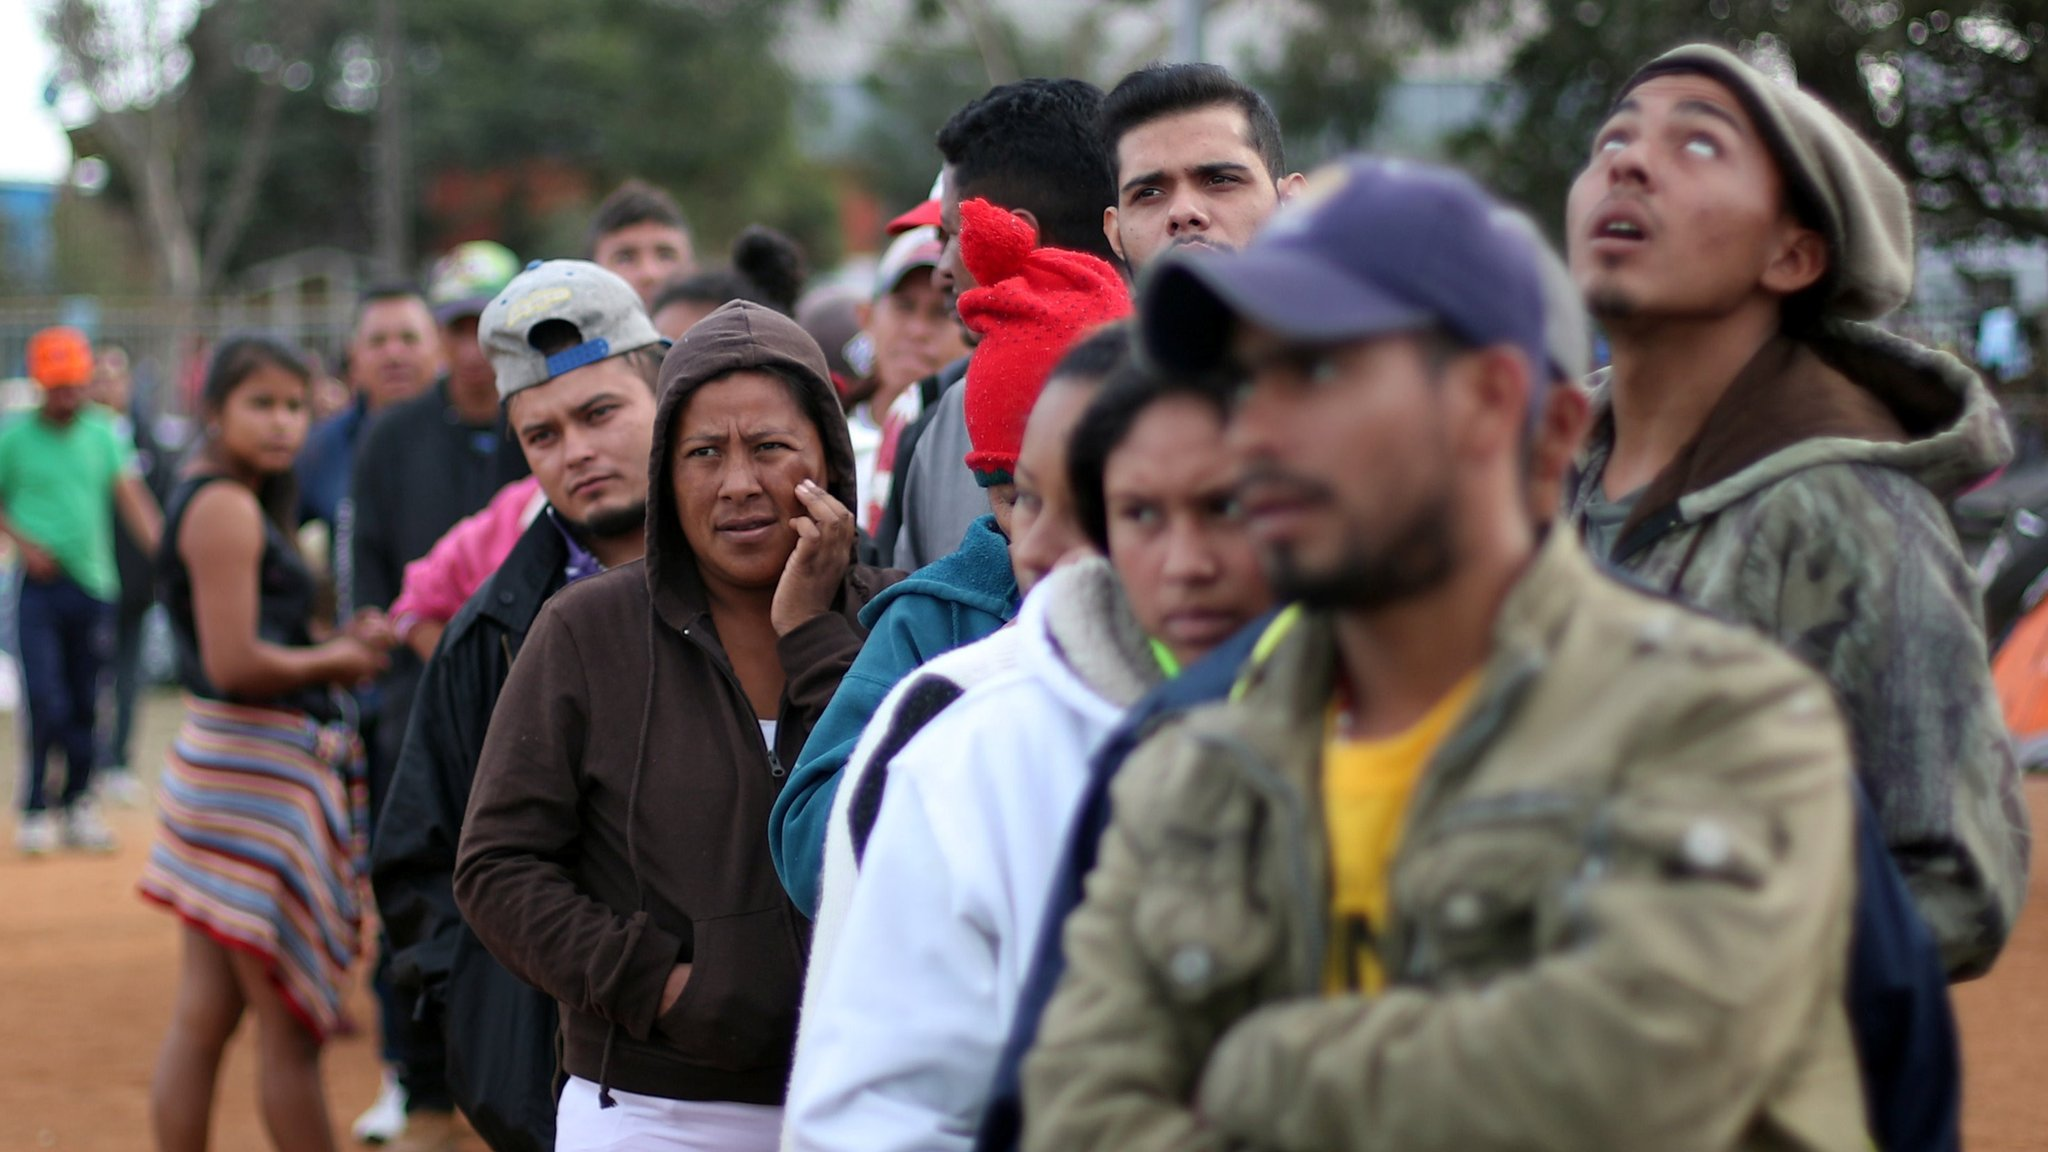 US migrant caravan: Trump's asylum ban halted by judge